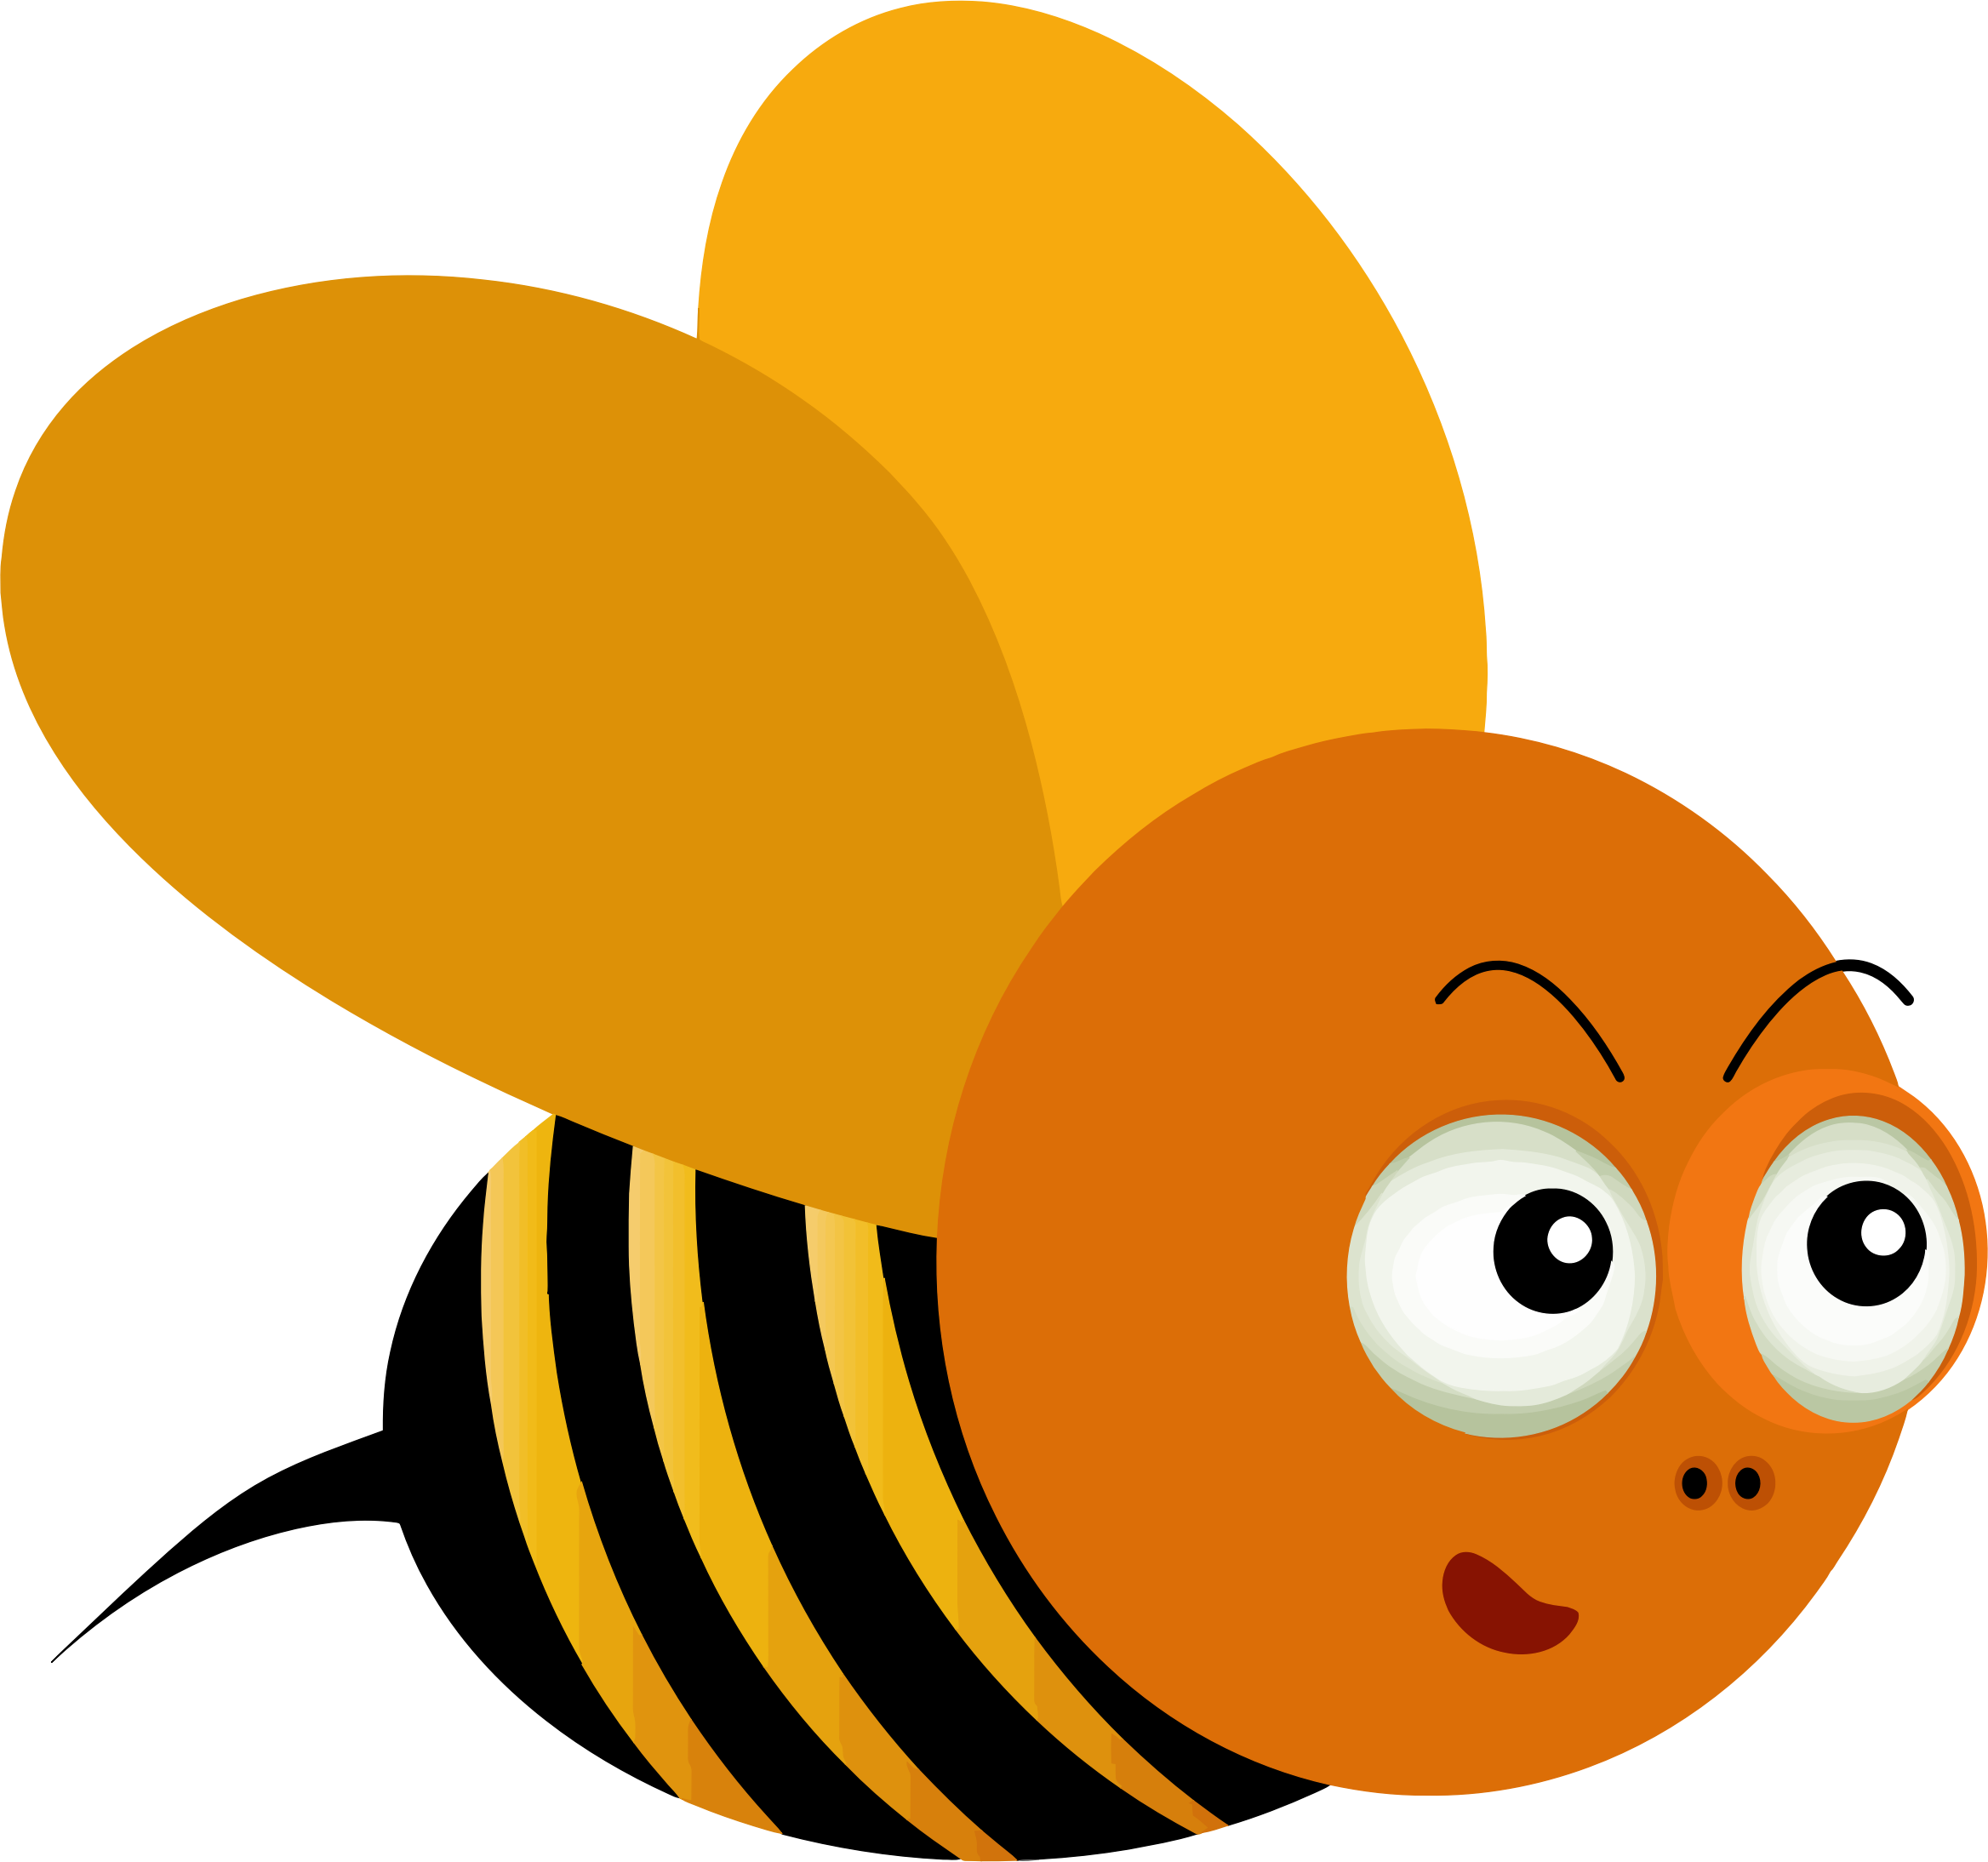 Comic Style Bee Illustration by GDJ